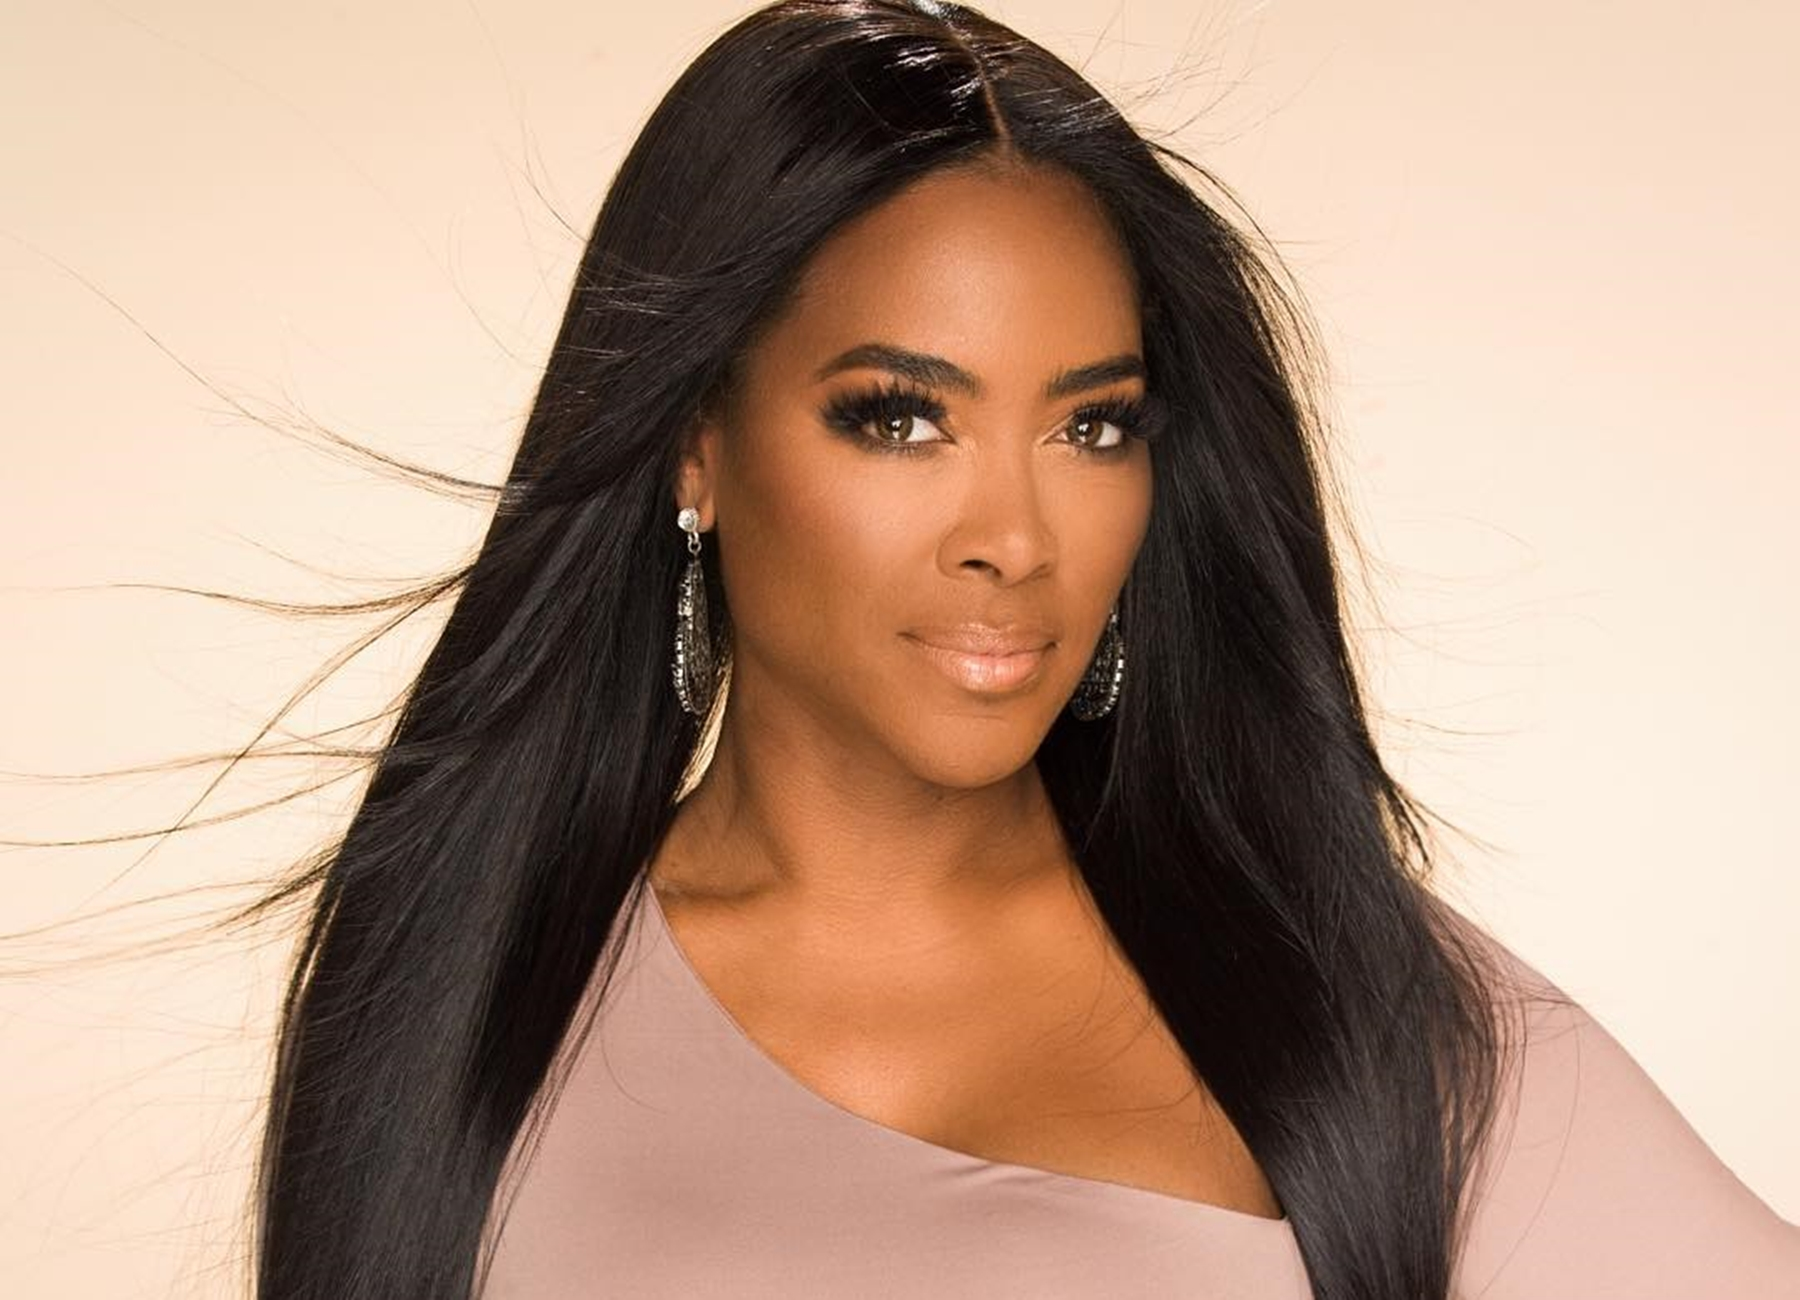 Kenya Moore's Fans Has The Pleasure To Meet Her At Dallas Ultimate Women's Expo